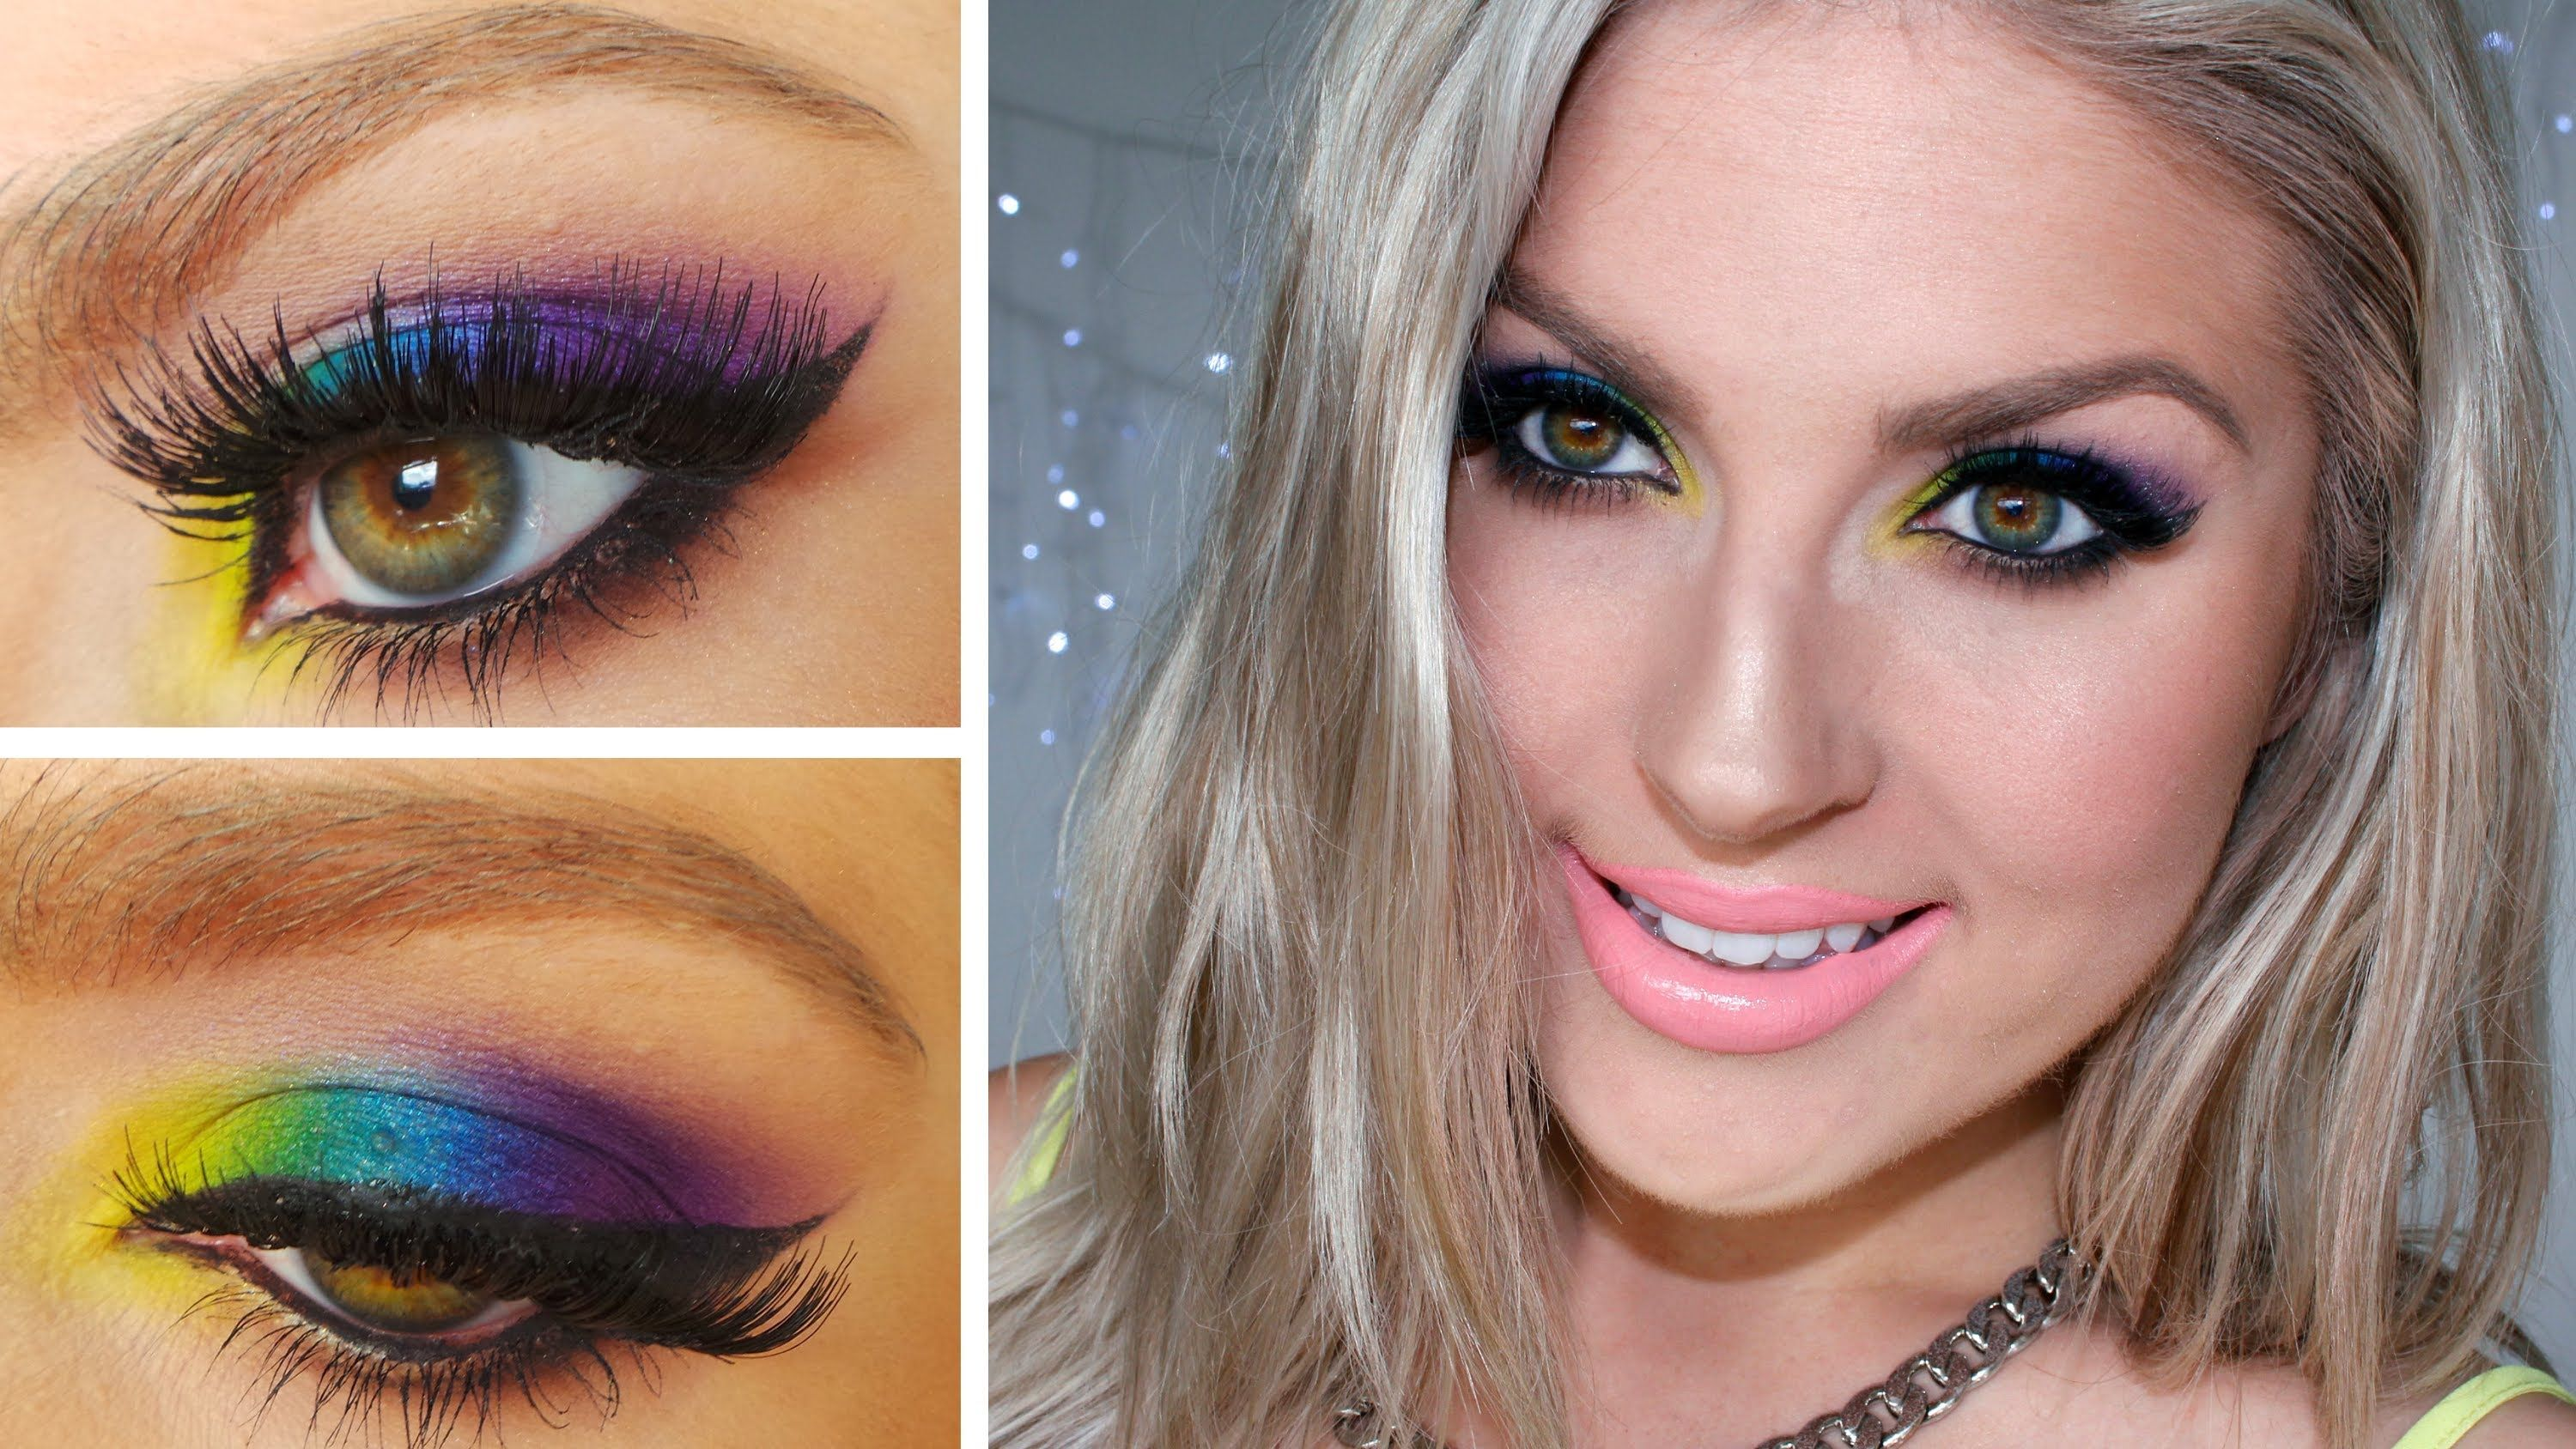 OBSESSED with this bright eye makeup look I created! And